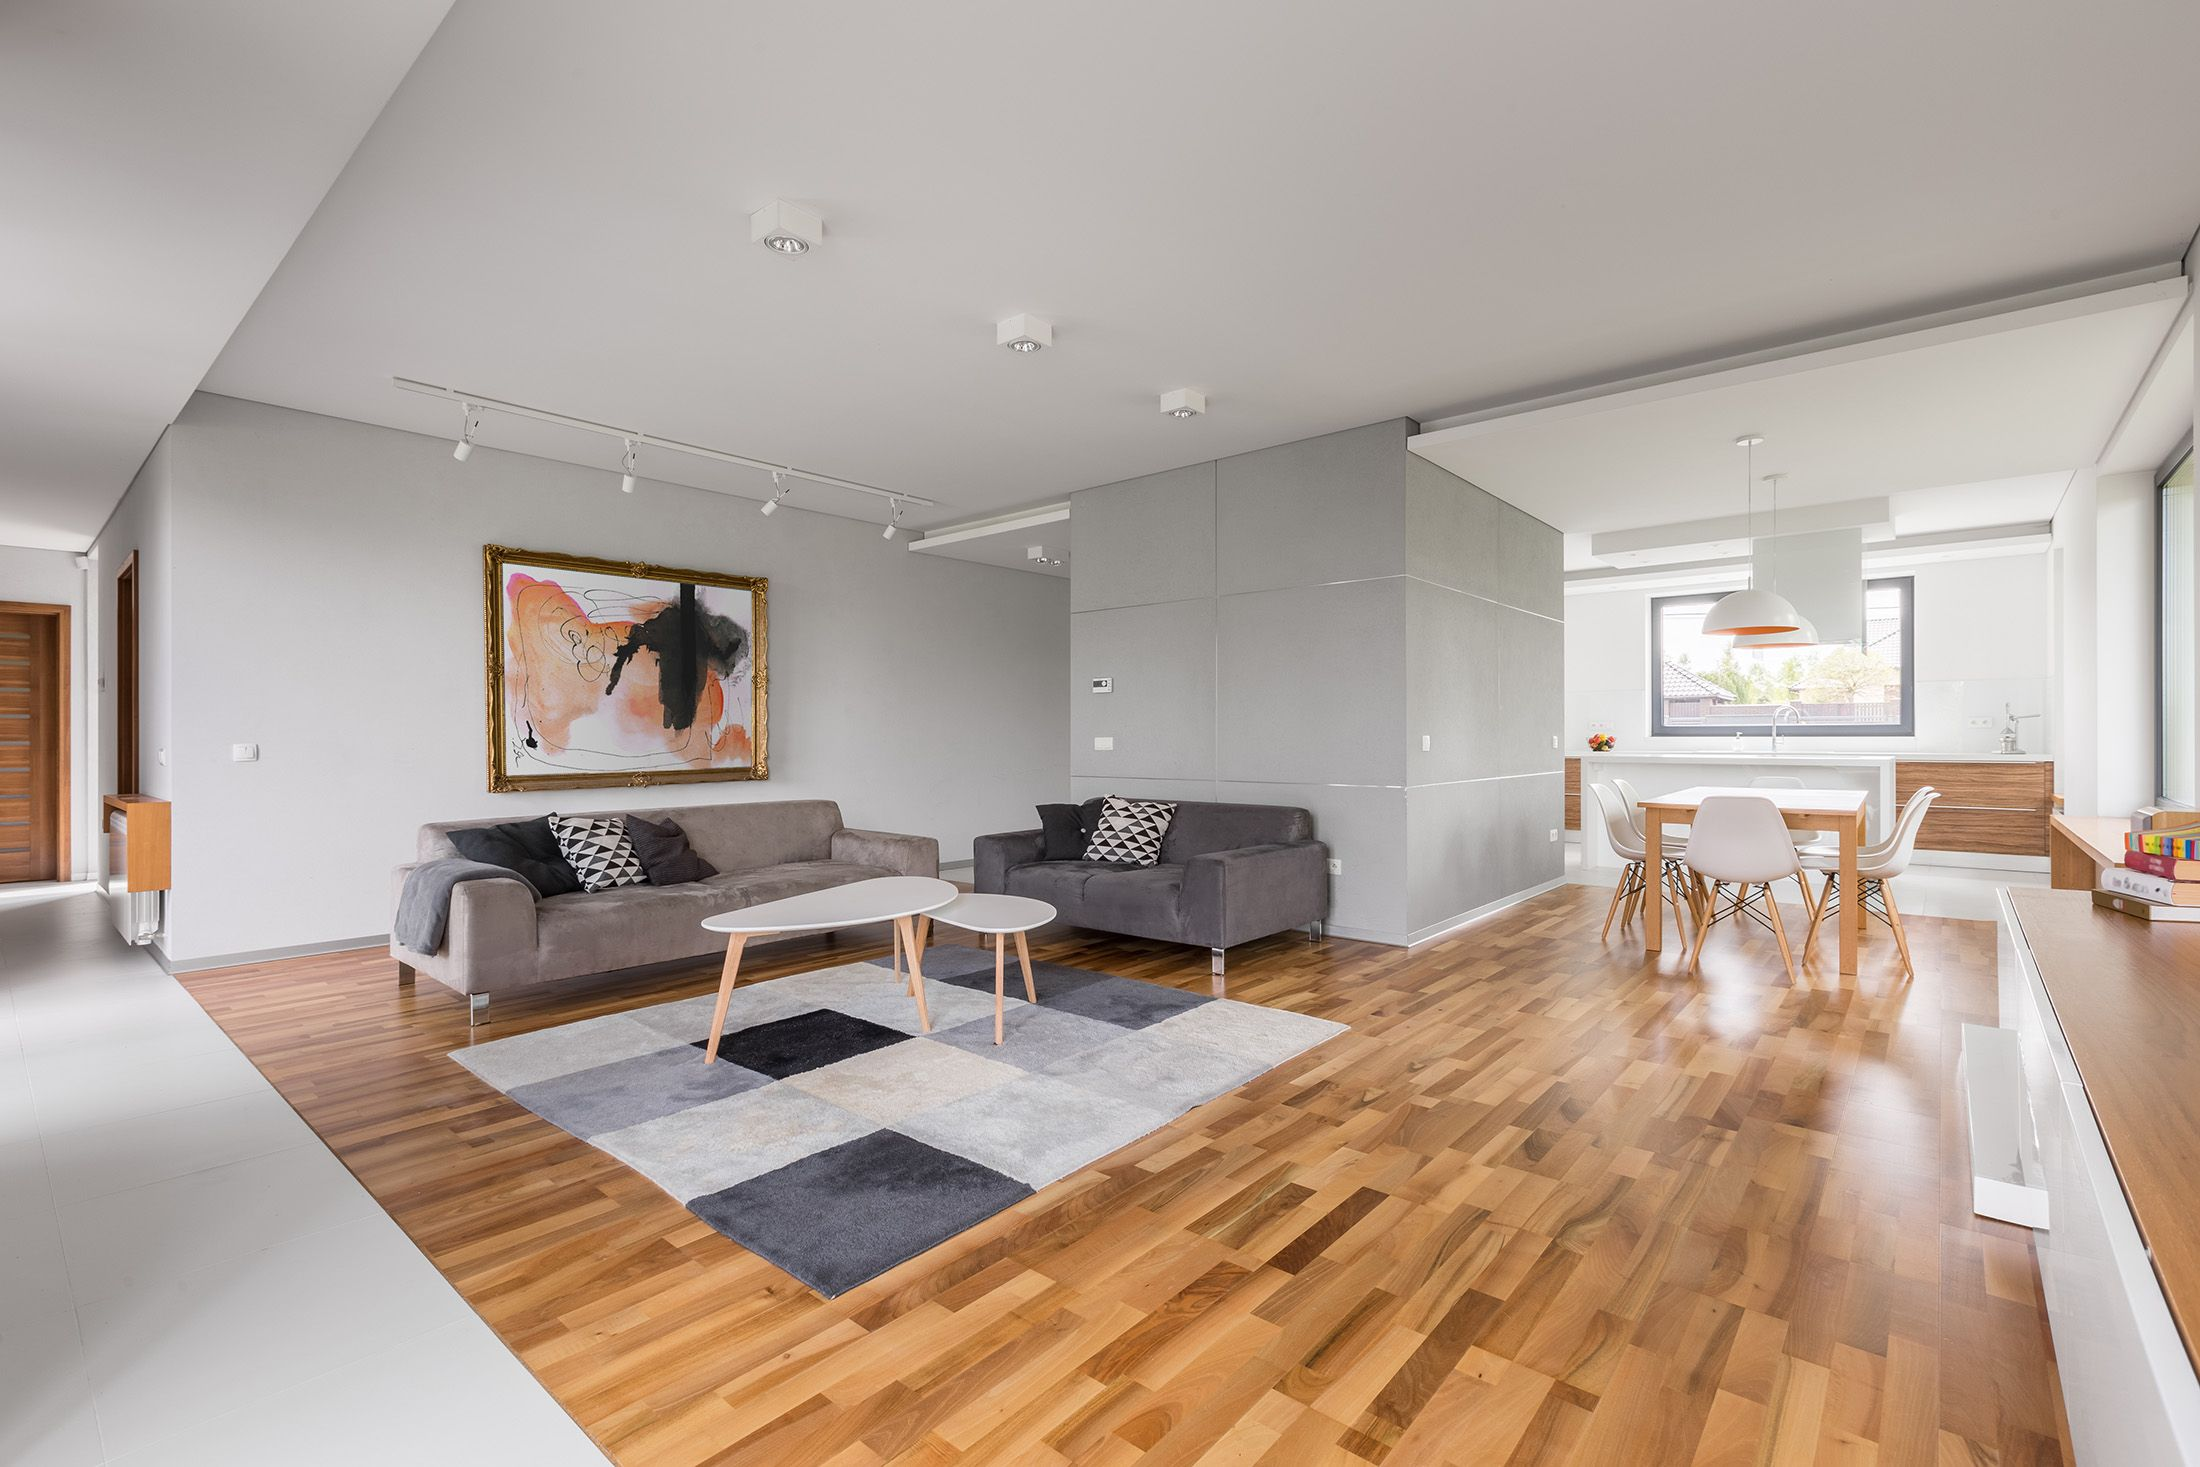 Are you searching for lodo apartments in Denver. A